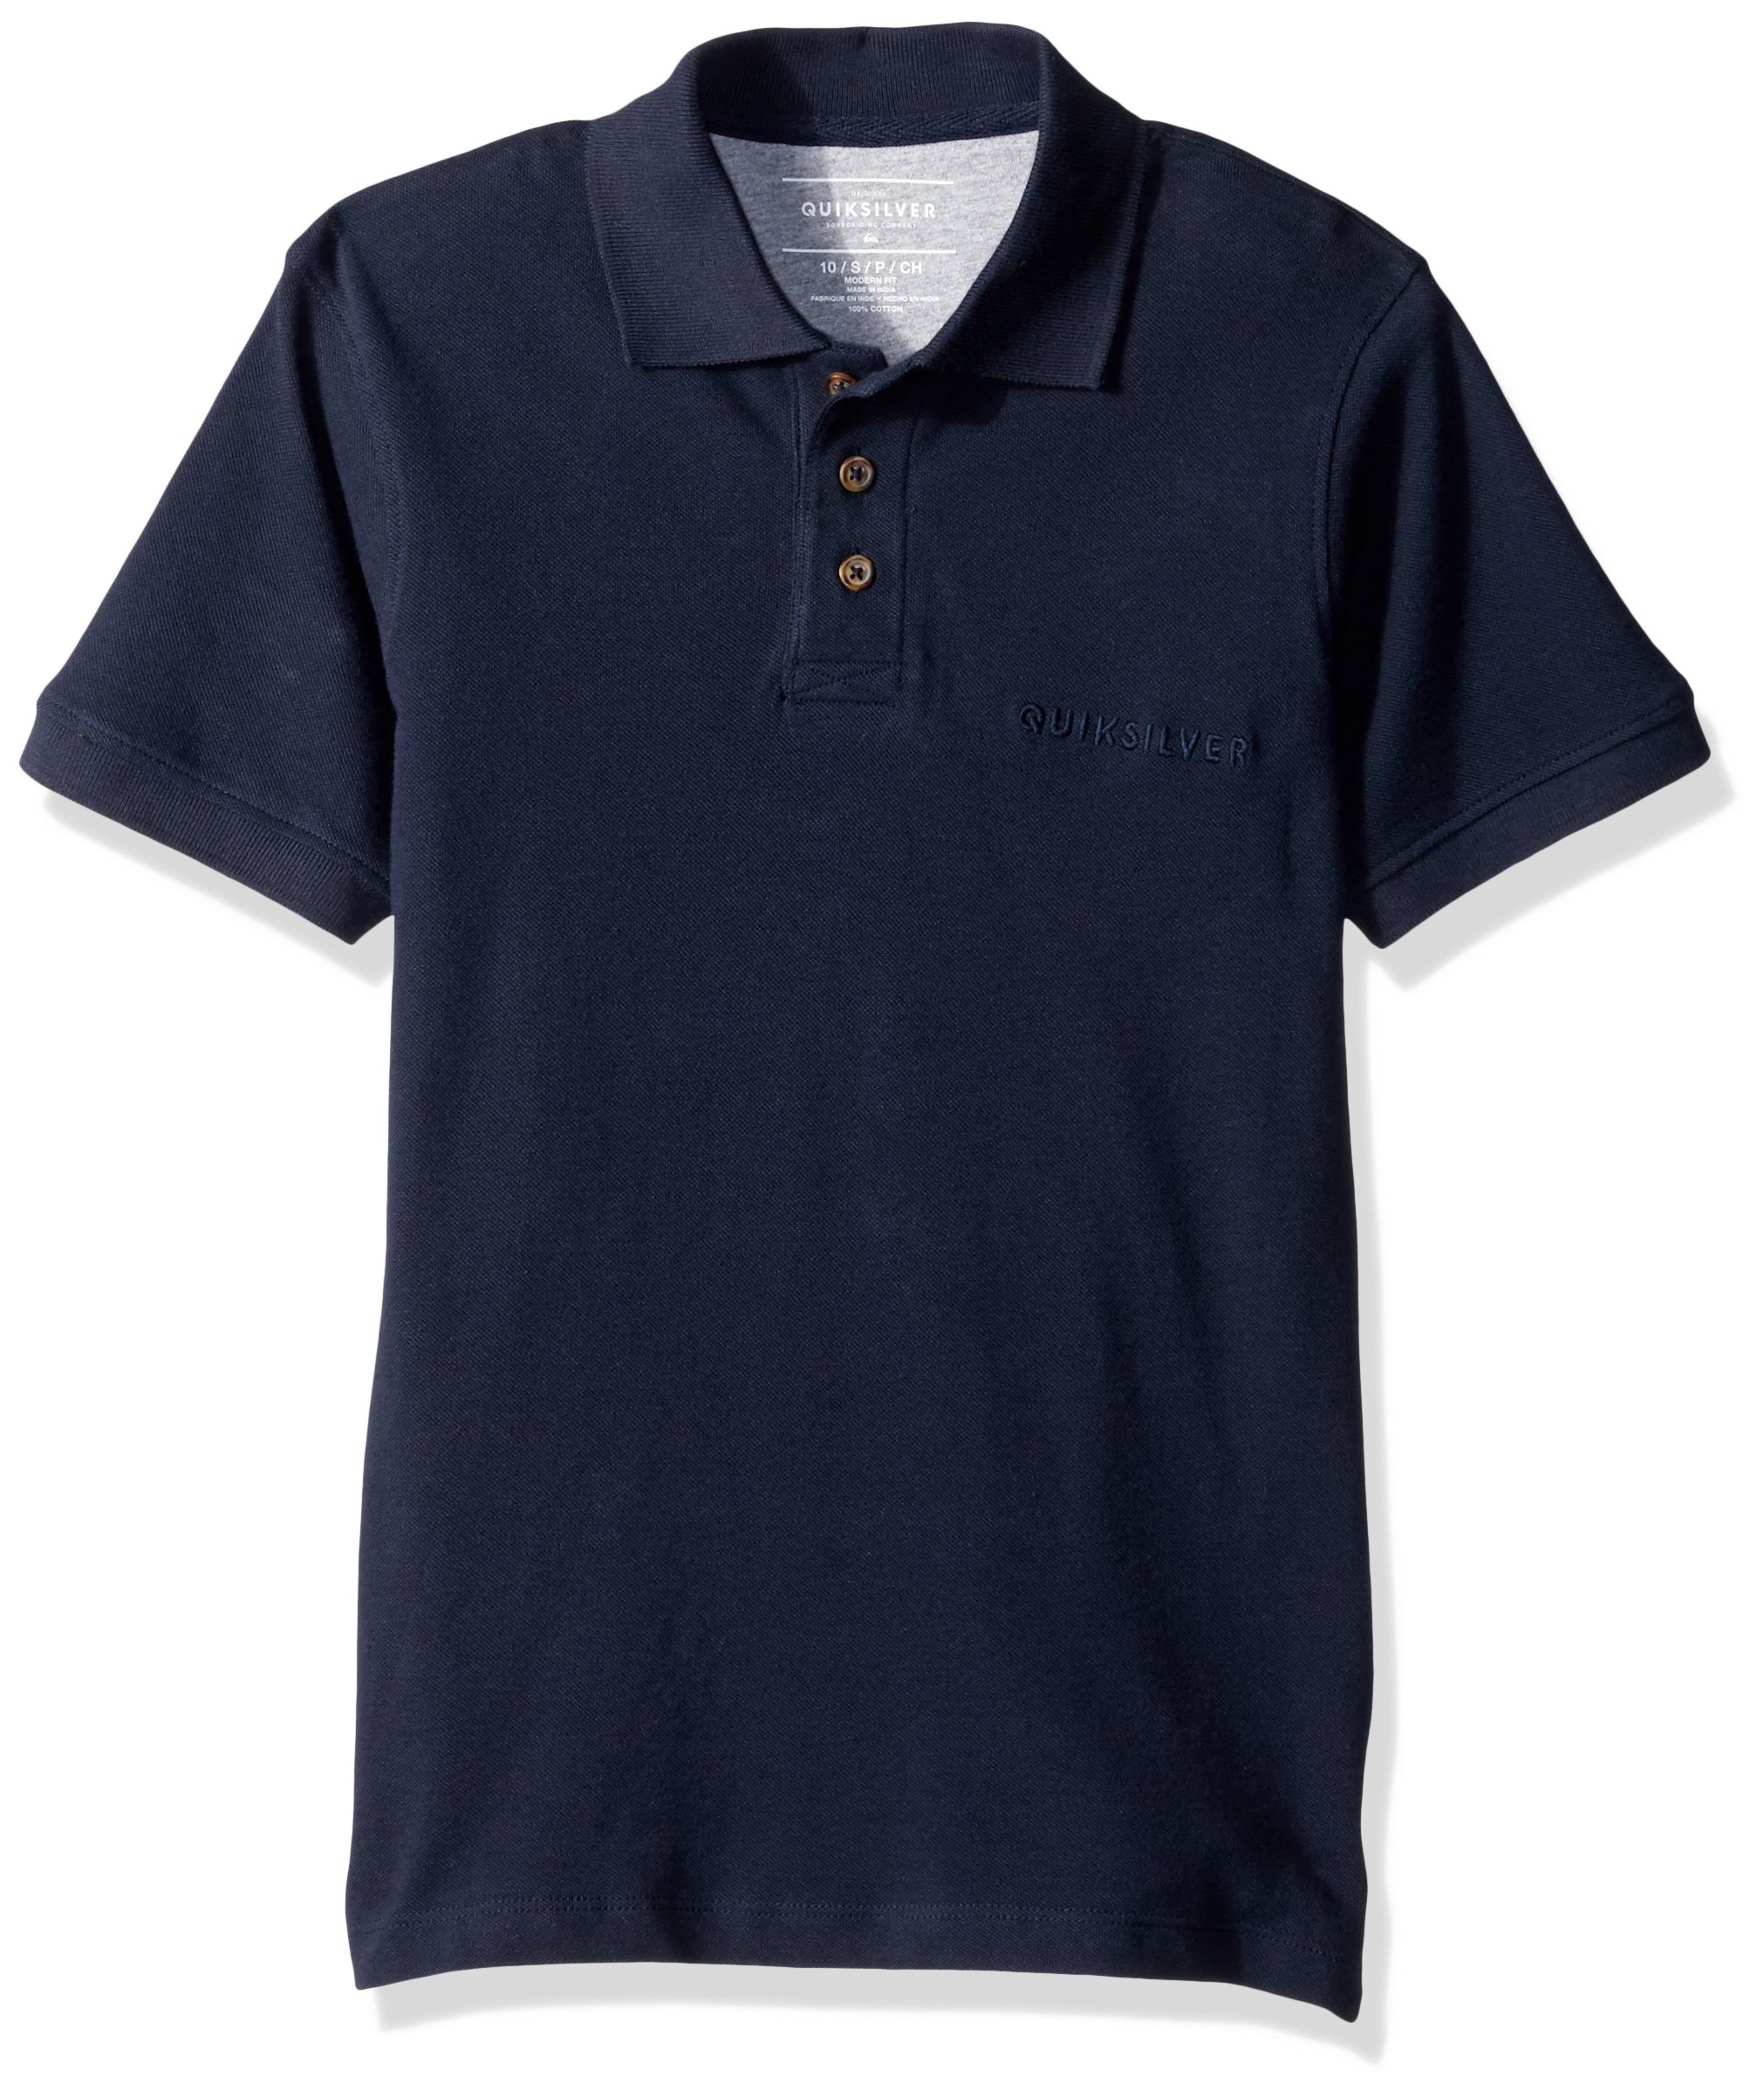 Quiksilver Big Boys' Tori Pass Polo Youth Shirt, Navy Blazer, XL/16